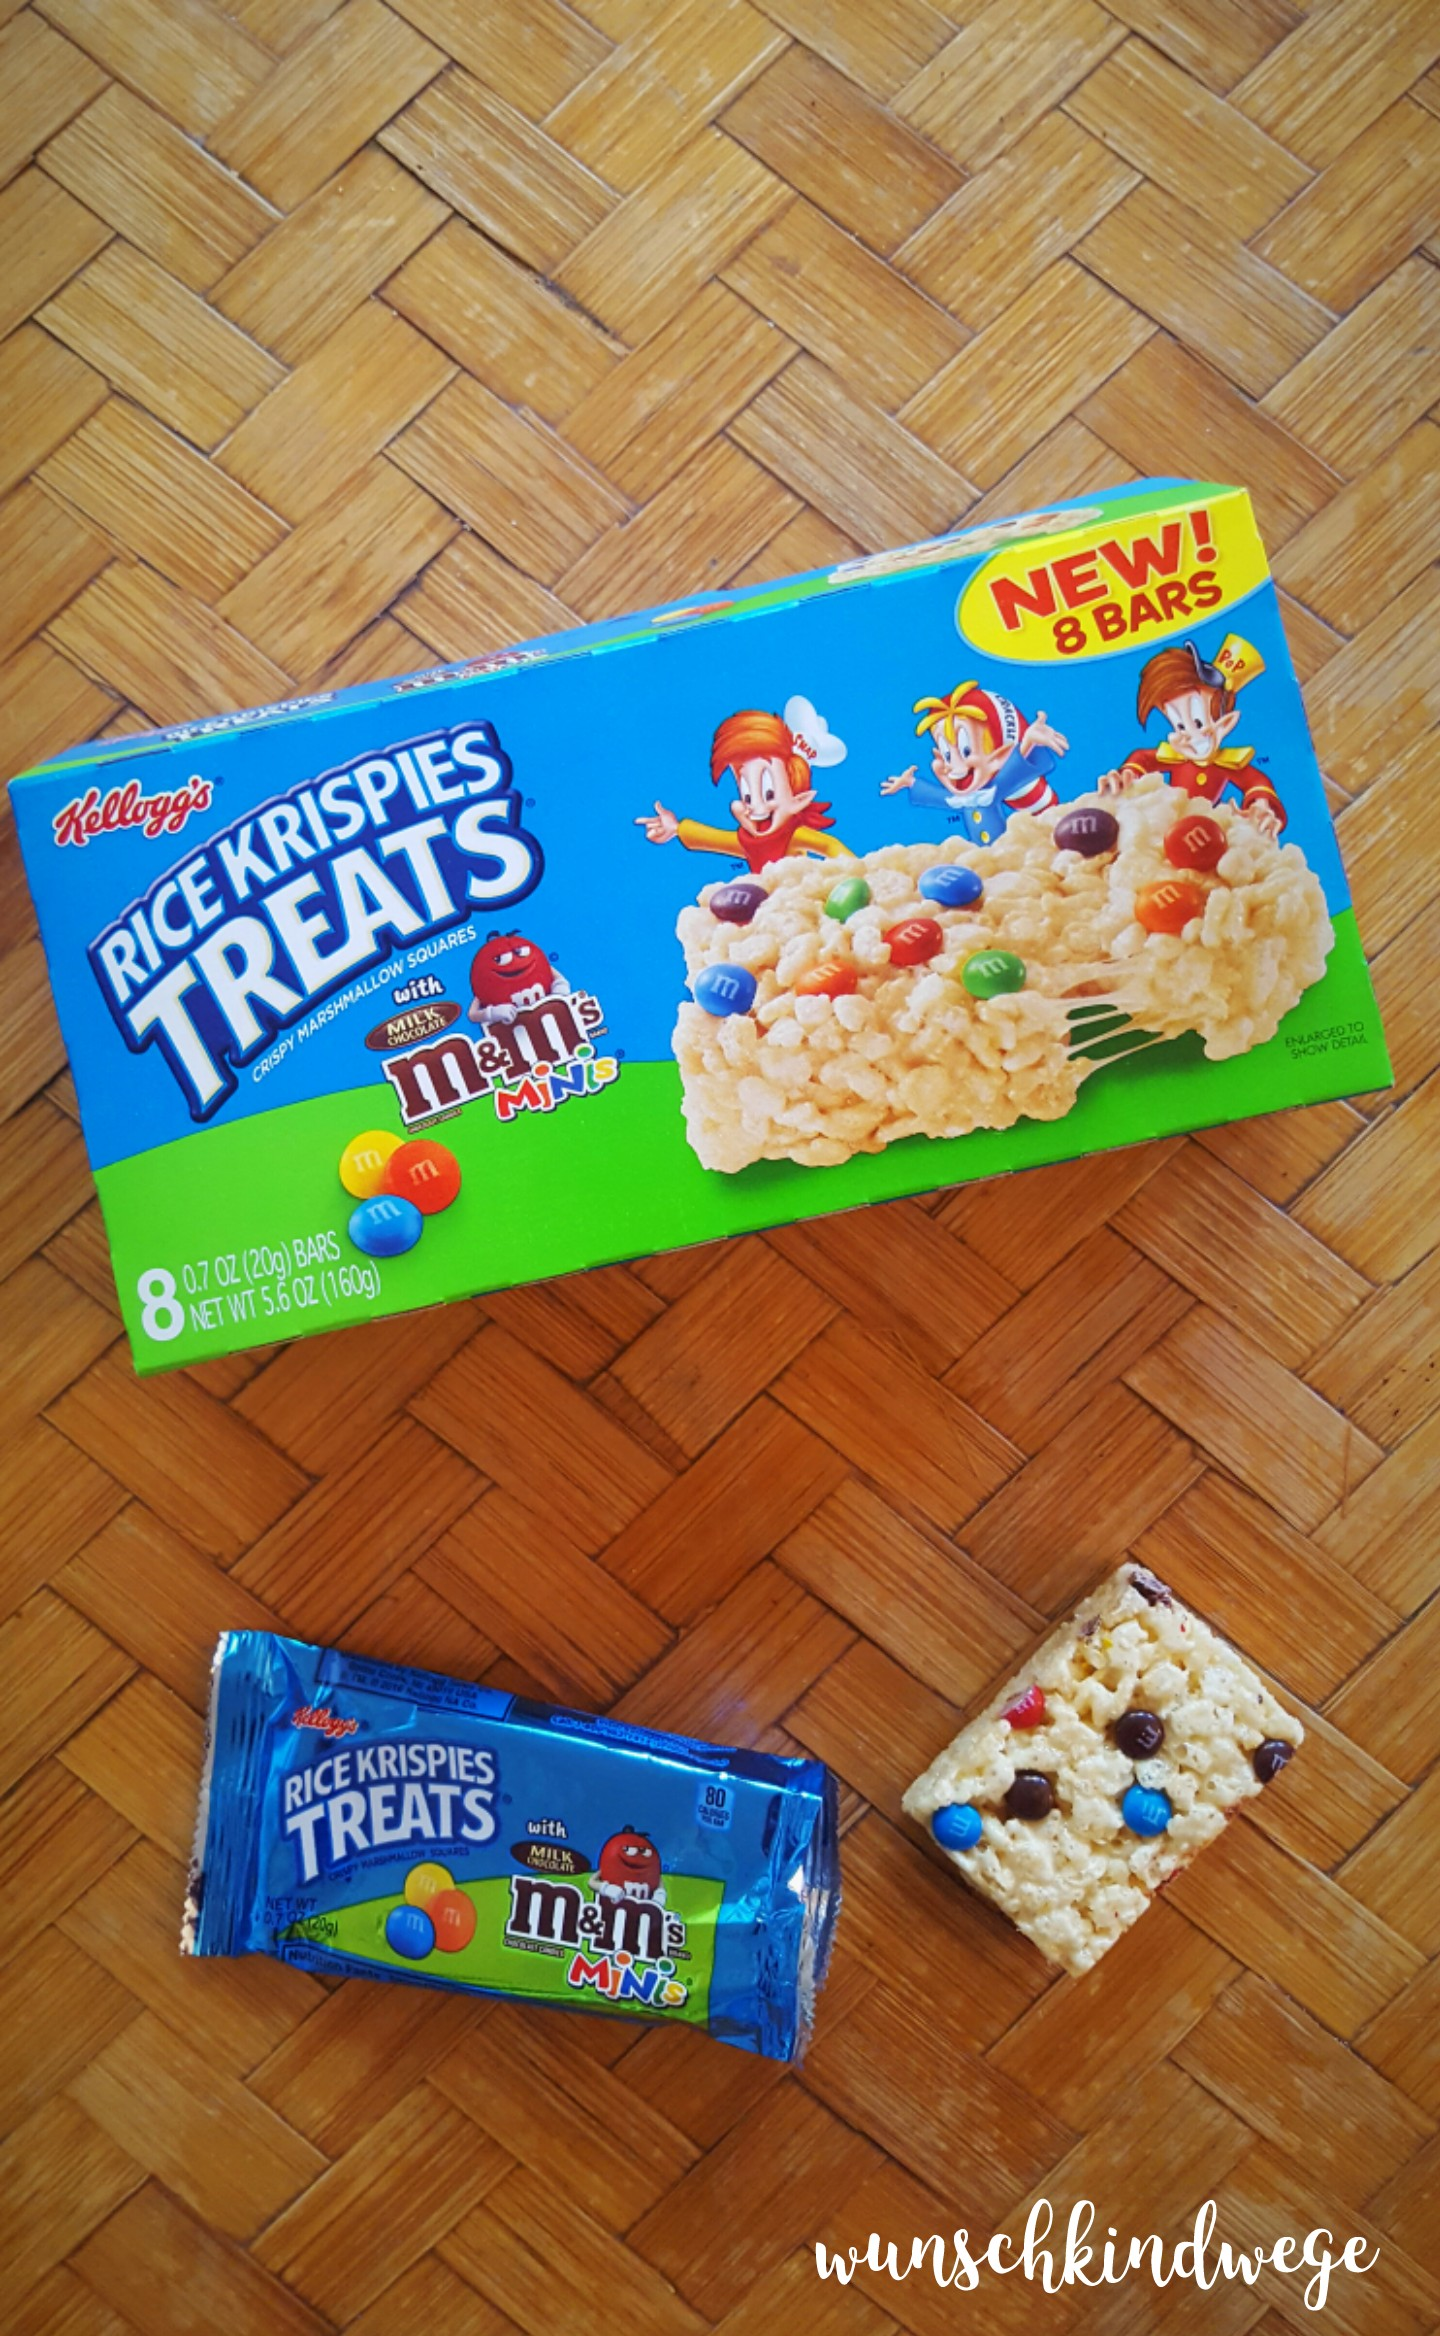 Rice Krispies Treats Lauderdale-by-the-Sea